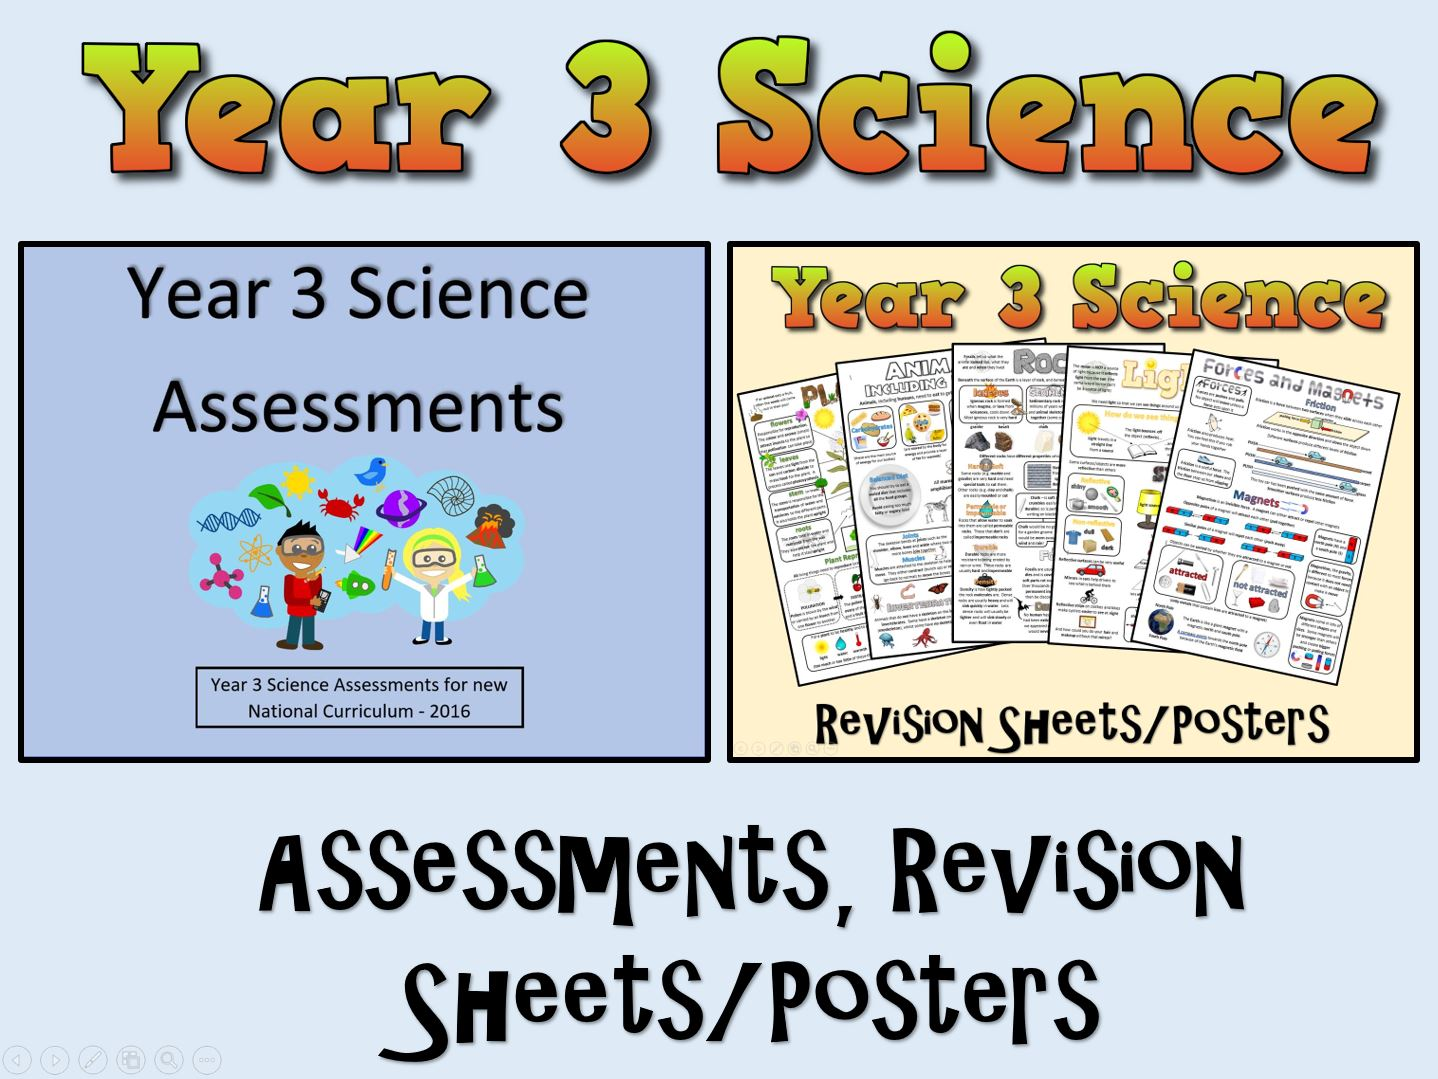 Year 3 Science Assessments Posters